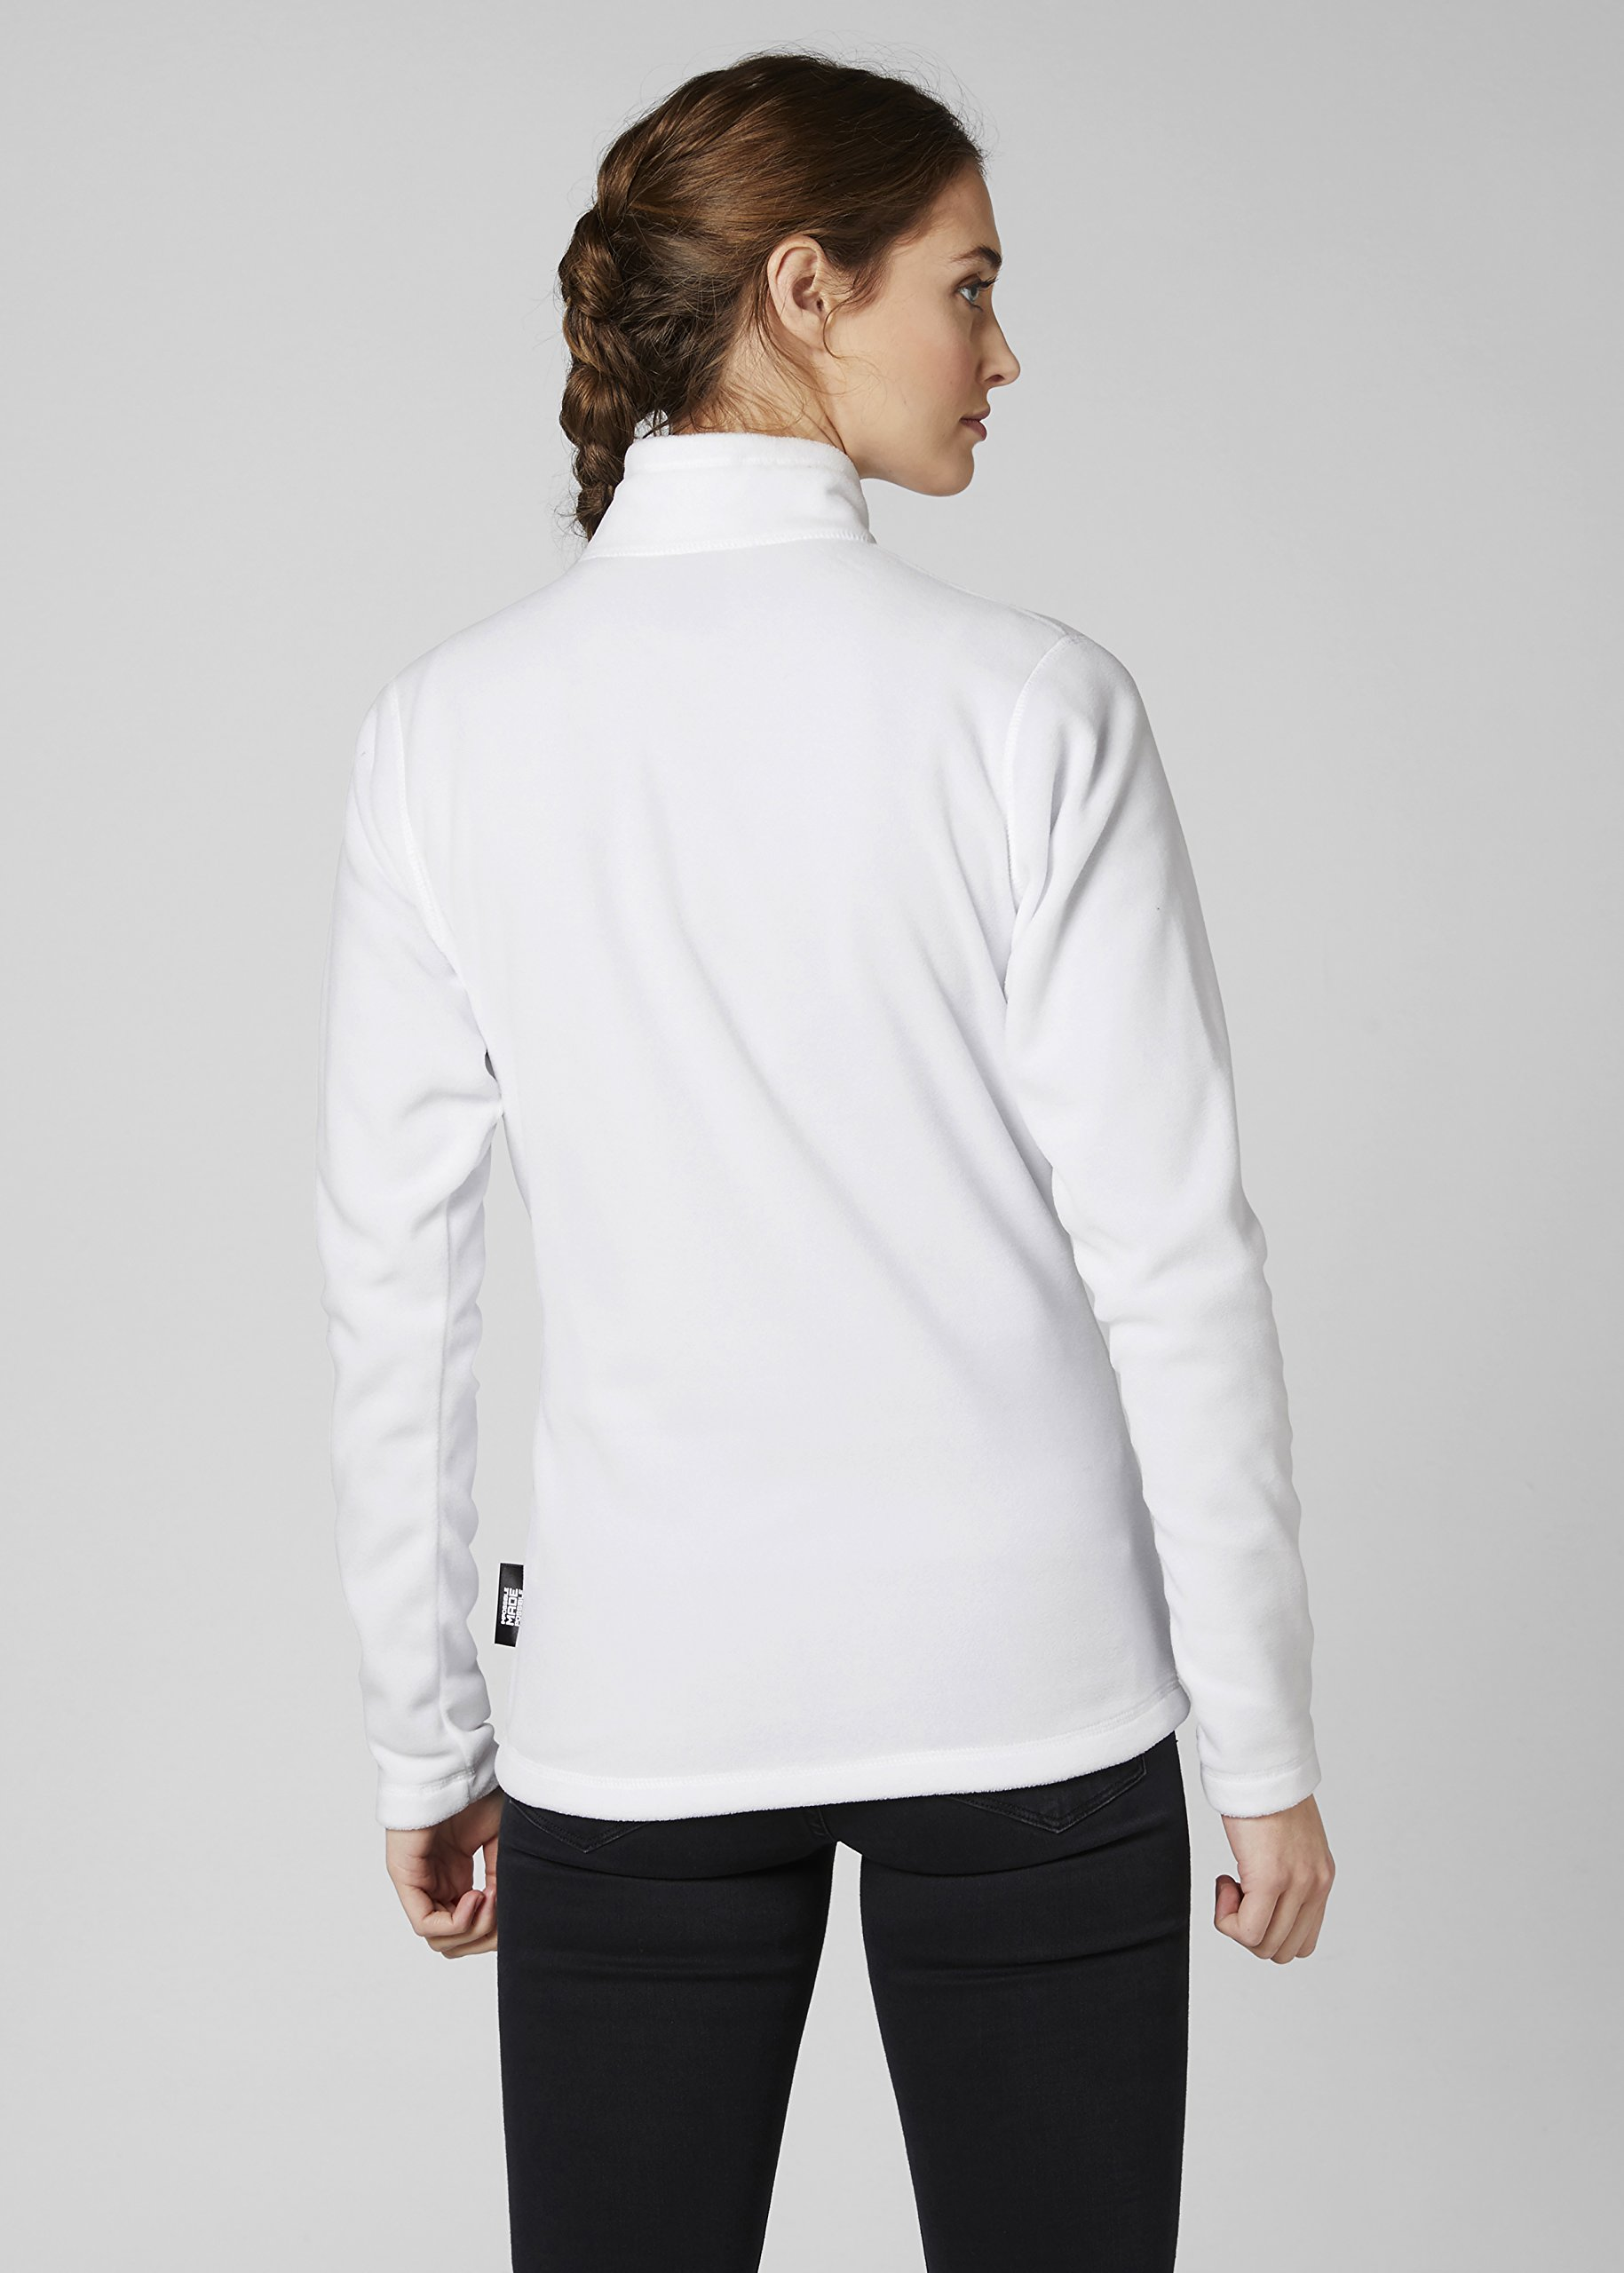 81K hJEMAcL - Helly Hansen Women's Daybreaker Fleece